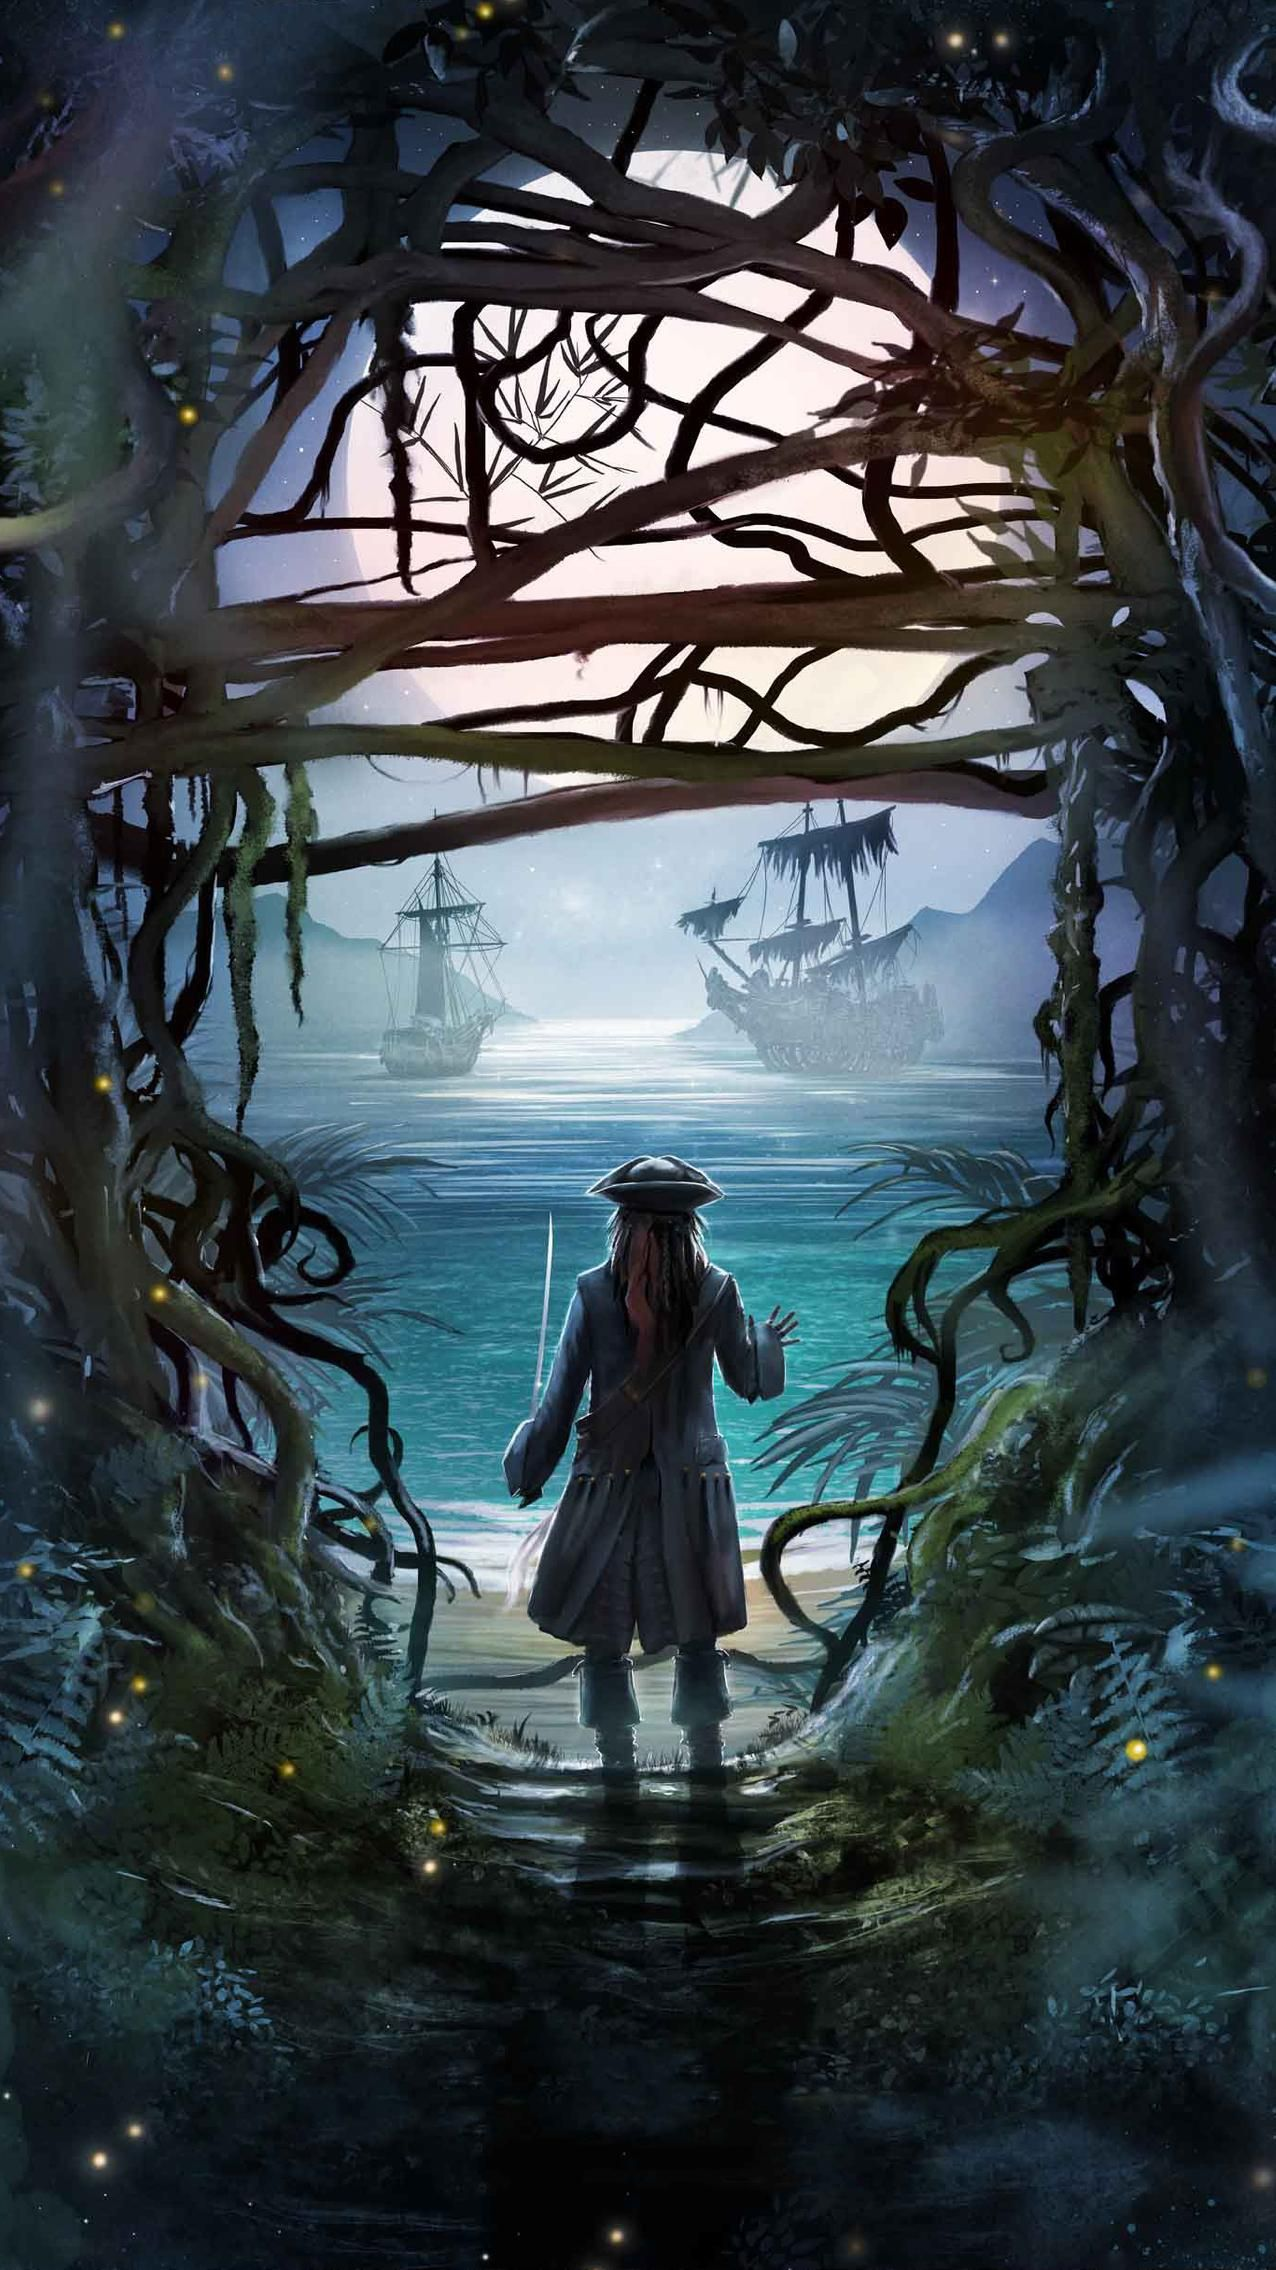 Pirates Of The Caribbean Dead Men Tell No Tales 2017 Phone Wallpaper Moviemania Pirates Of The Caribbean Caribbean Art Jack Sparrow Wallpaper